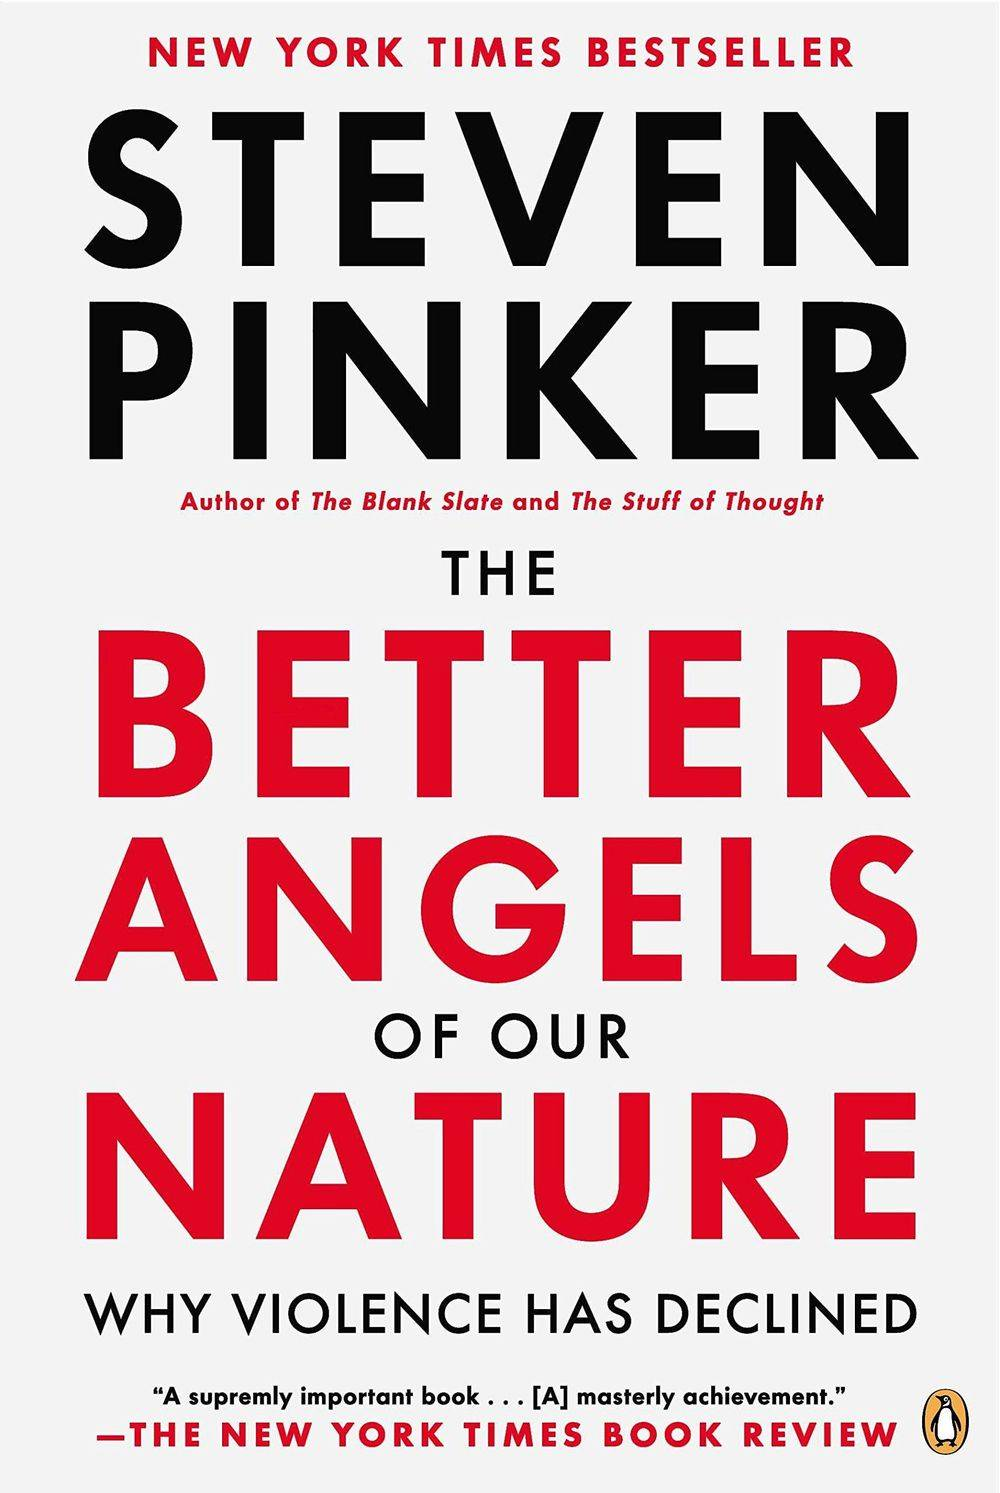 The Better Angles of Our Nature, Why Violence Has Declined, Steven Pinker, Book Review, War Is My Business, Business, civil-military